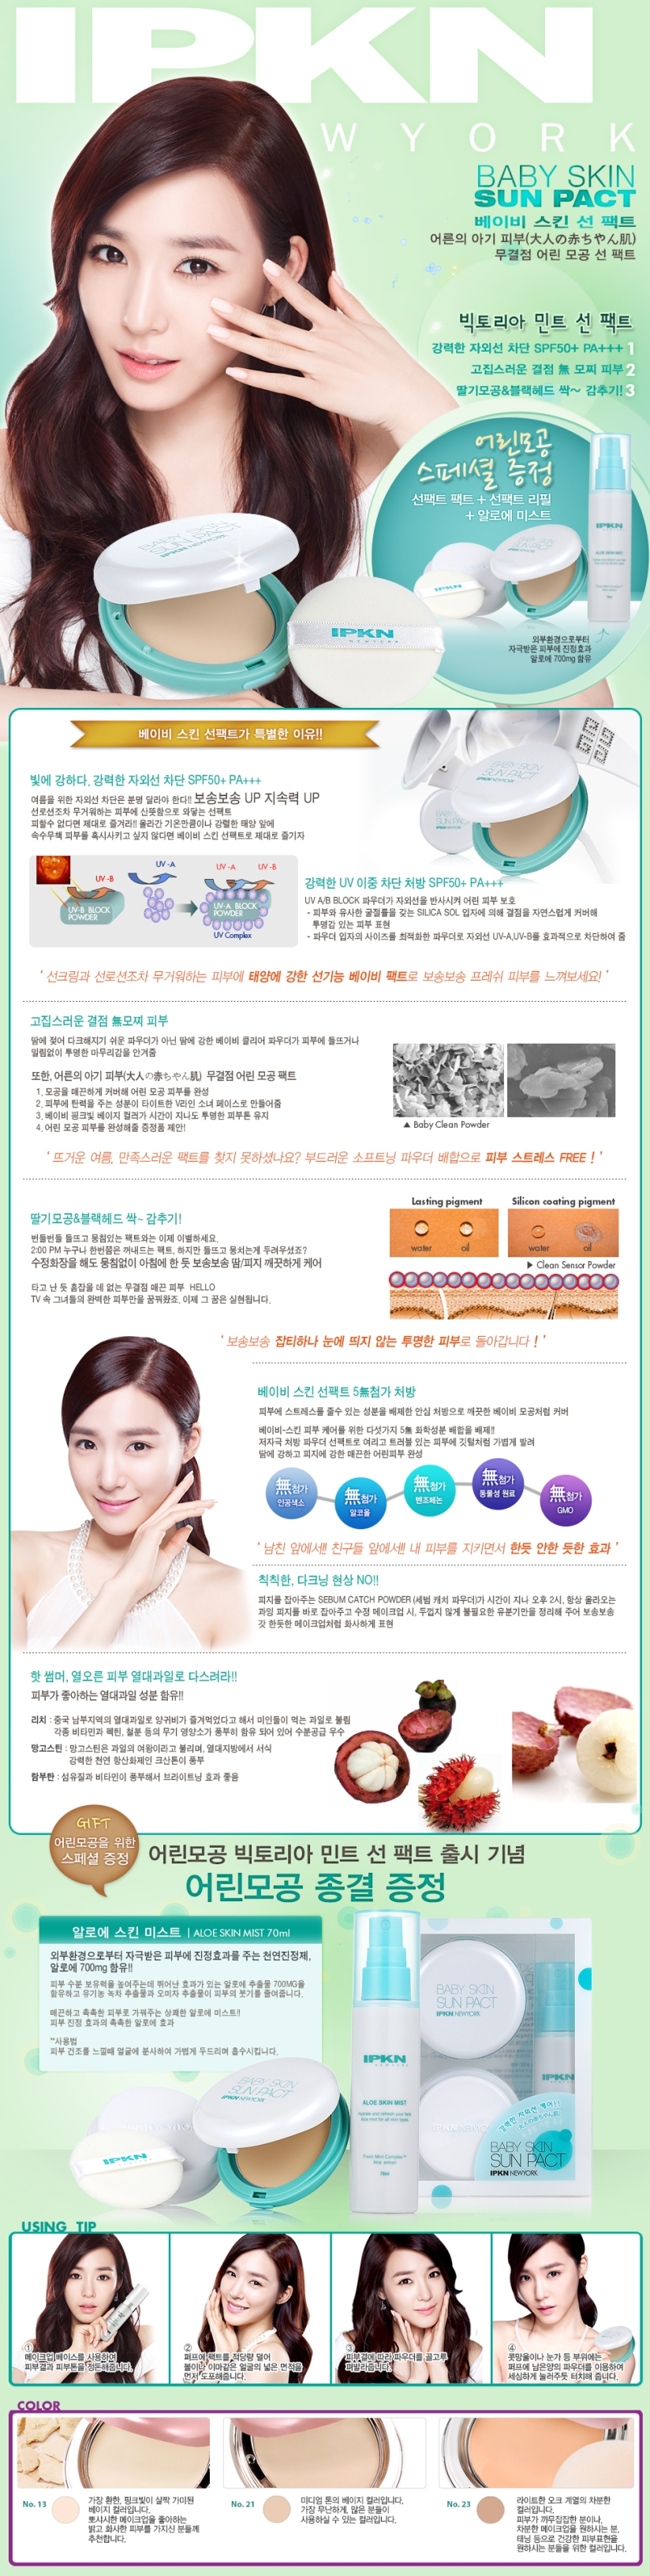 [140707] Tiffany (SNSD) New Picture for IPKN CF [11]